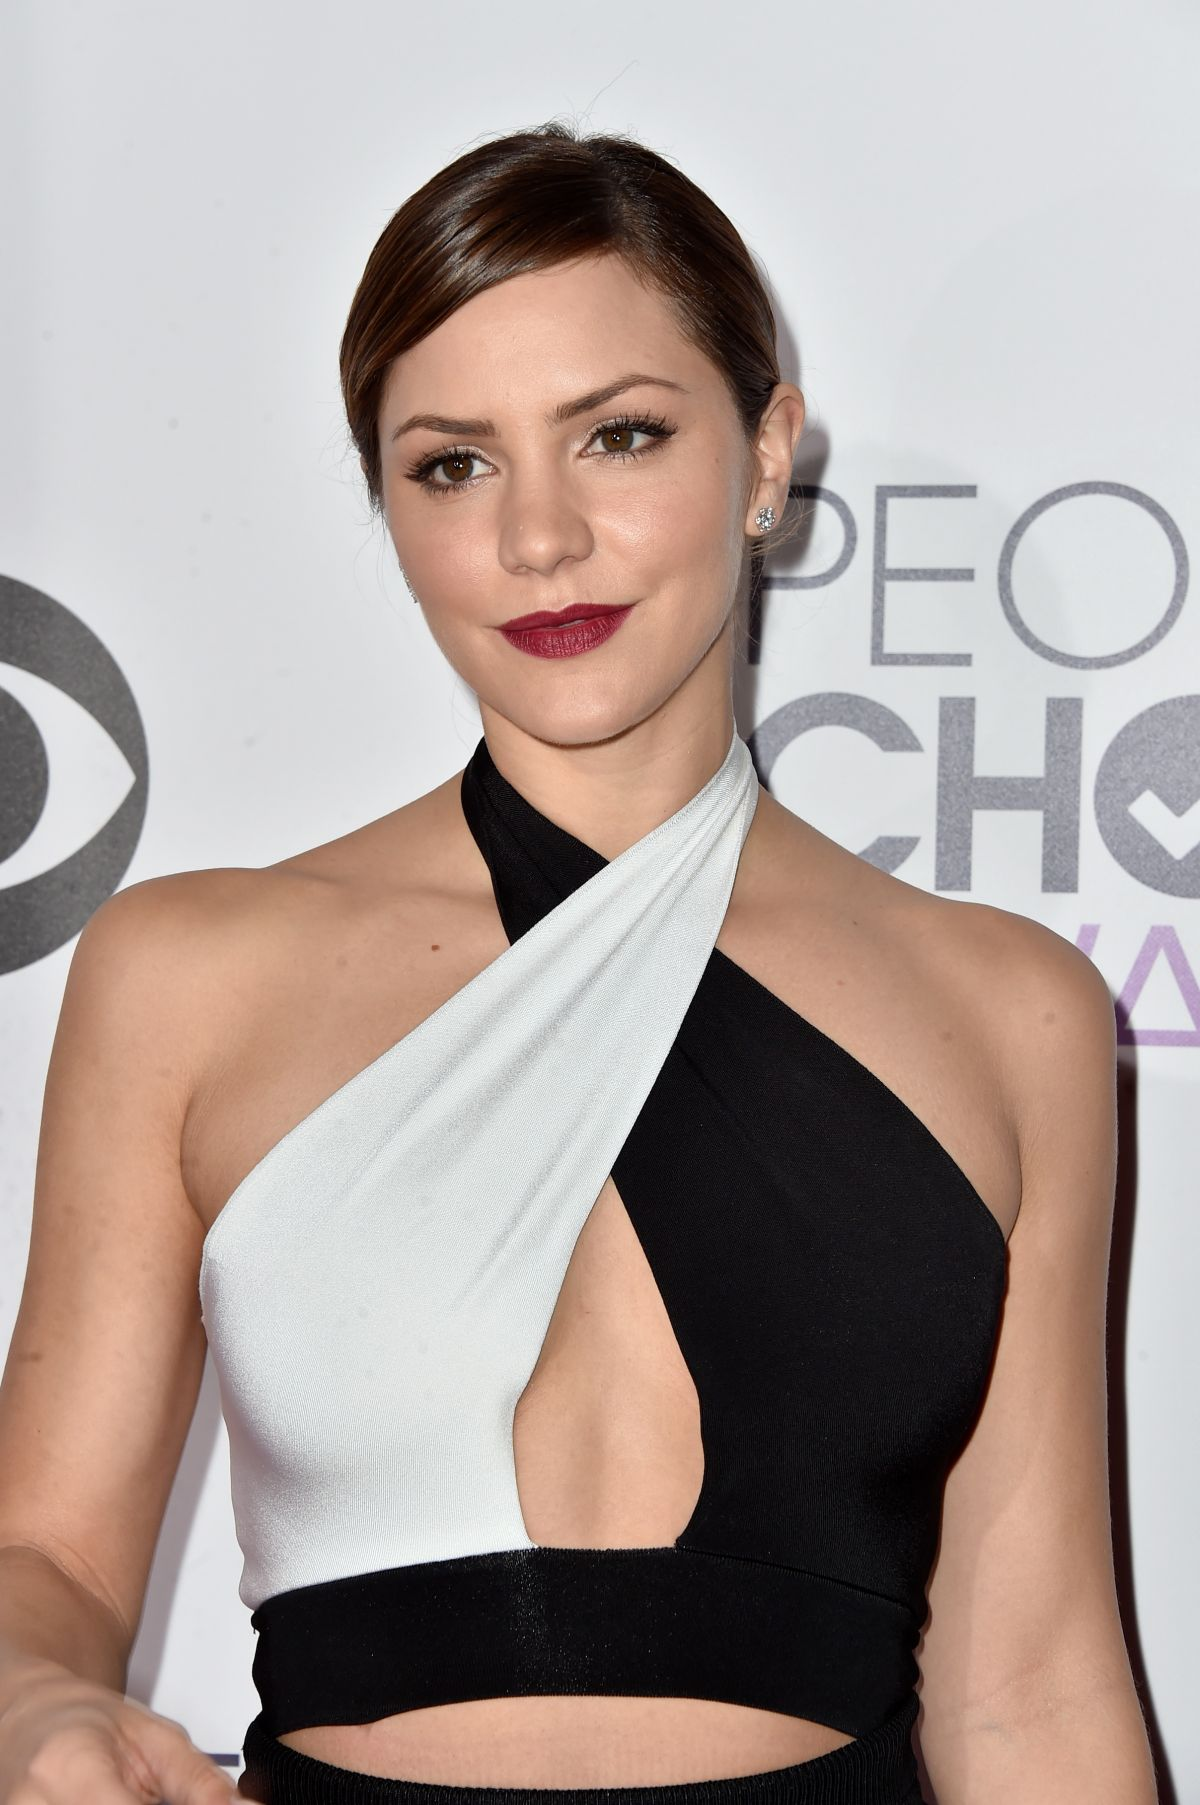 katharine mcphee tumblrkatharine mcphee - over it, katharine mcphee gif, katharine mcphee hysteria, katharine mcphee -, katharine mcphee tumblr, katharine mcphee snapchat, katharine mcphee - say goodbye, katharine mcphee site, katharine mcphee youtube, katharine mcphee connected, katharine mcphee fansite, katharine mcphee fan, katharine mcphee smash, katharine mcphee listal, katharine mcphee interview, katharine mcphee and andrea bocelli, katharine mcphee grammy, katharine mcphee wdw, katharine mcphee - terrified, katharine mcphee fb